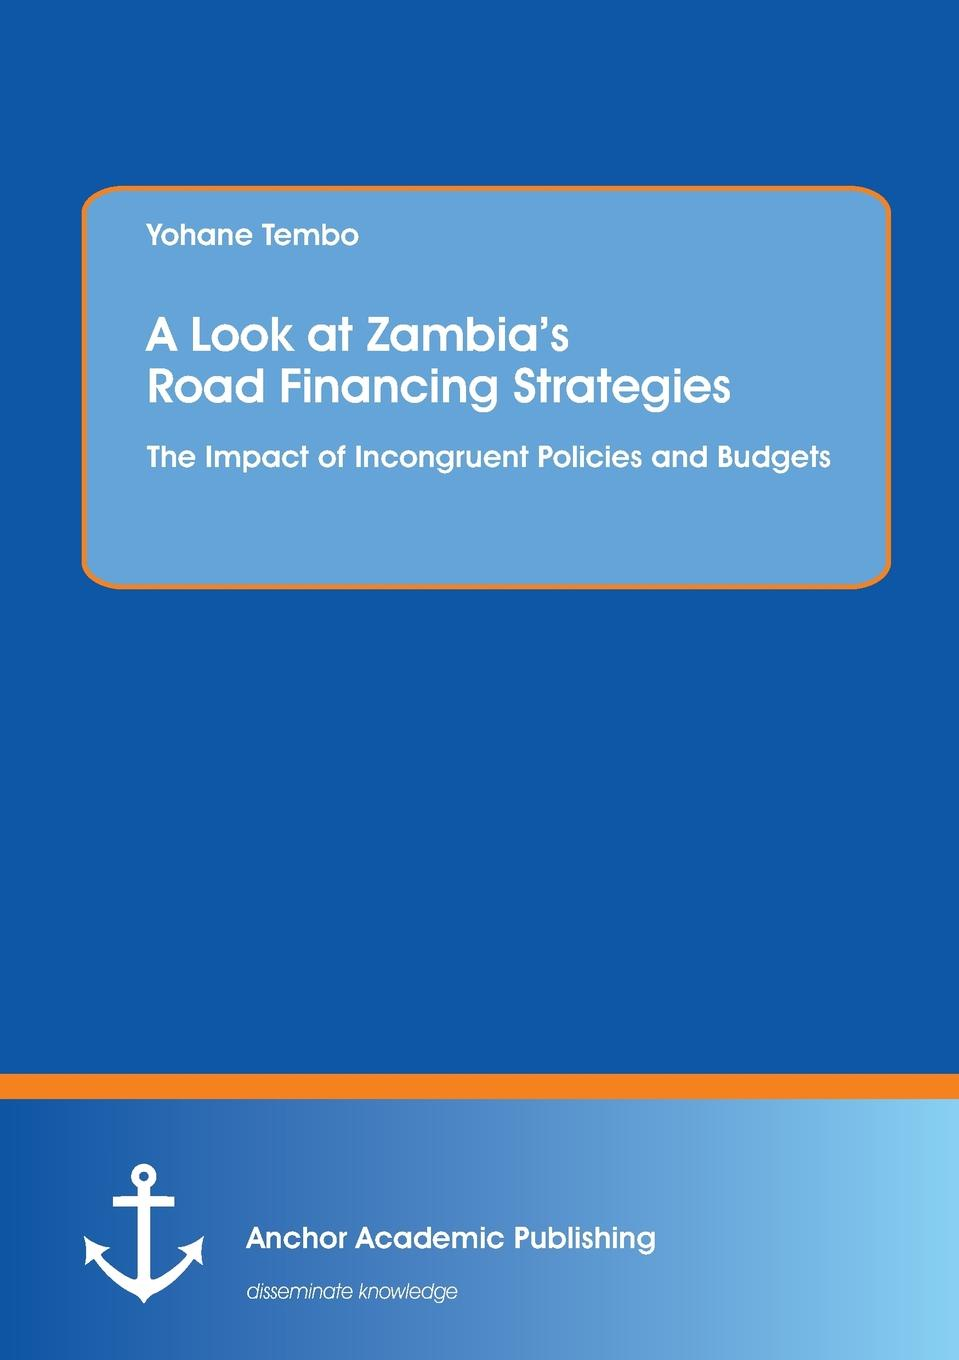 Yohane Tembo A Look at Zambia.s Road Financing Strategies. The Impact of Incongruent Policies and Budgets muse the road to the top